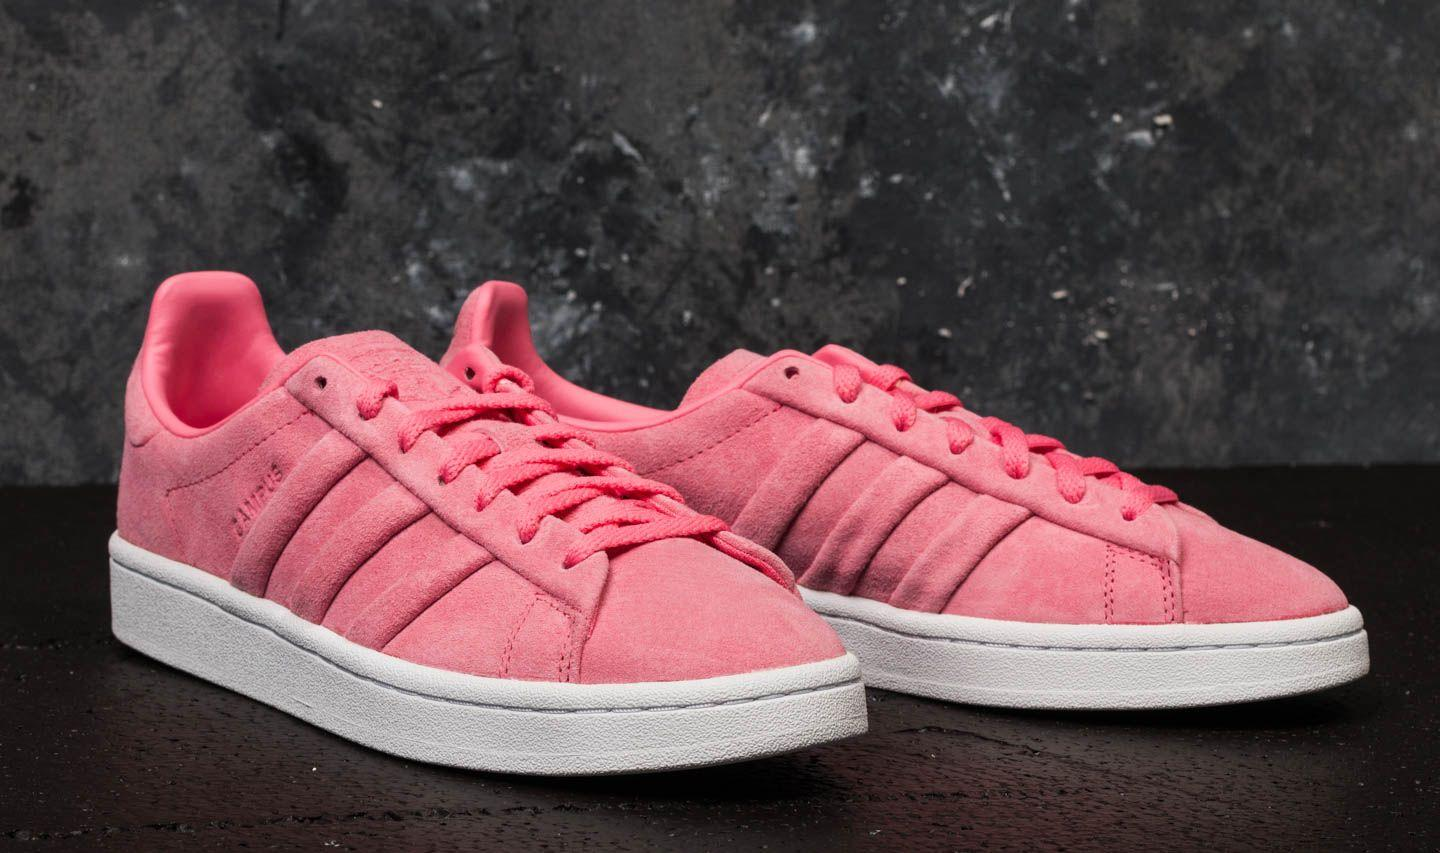 dad33a6e9815d Lyst - adidas Originals Adidas Campus Stitch And Turn W Chalk Pink ...